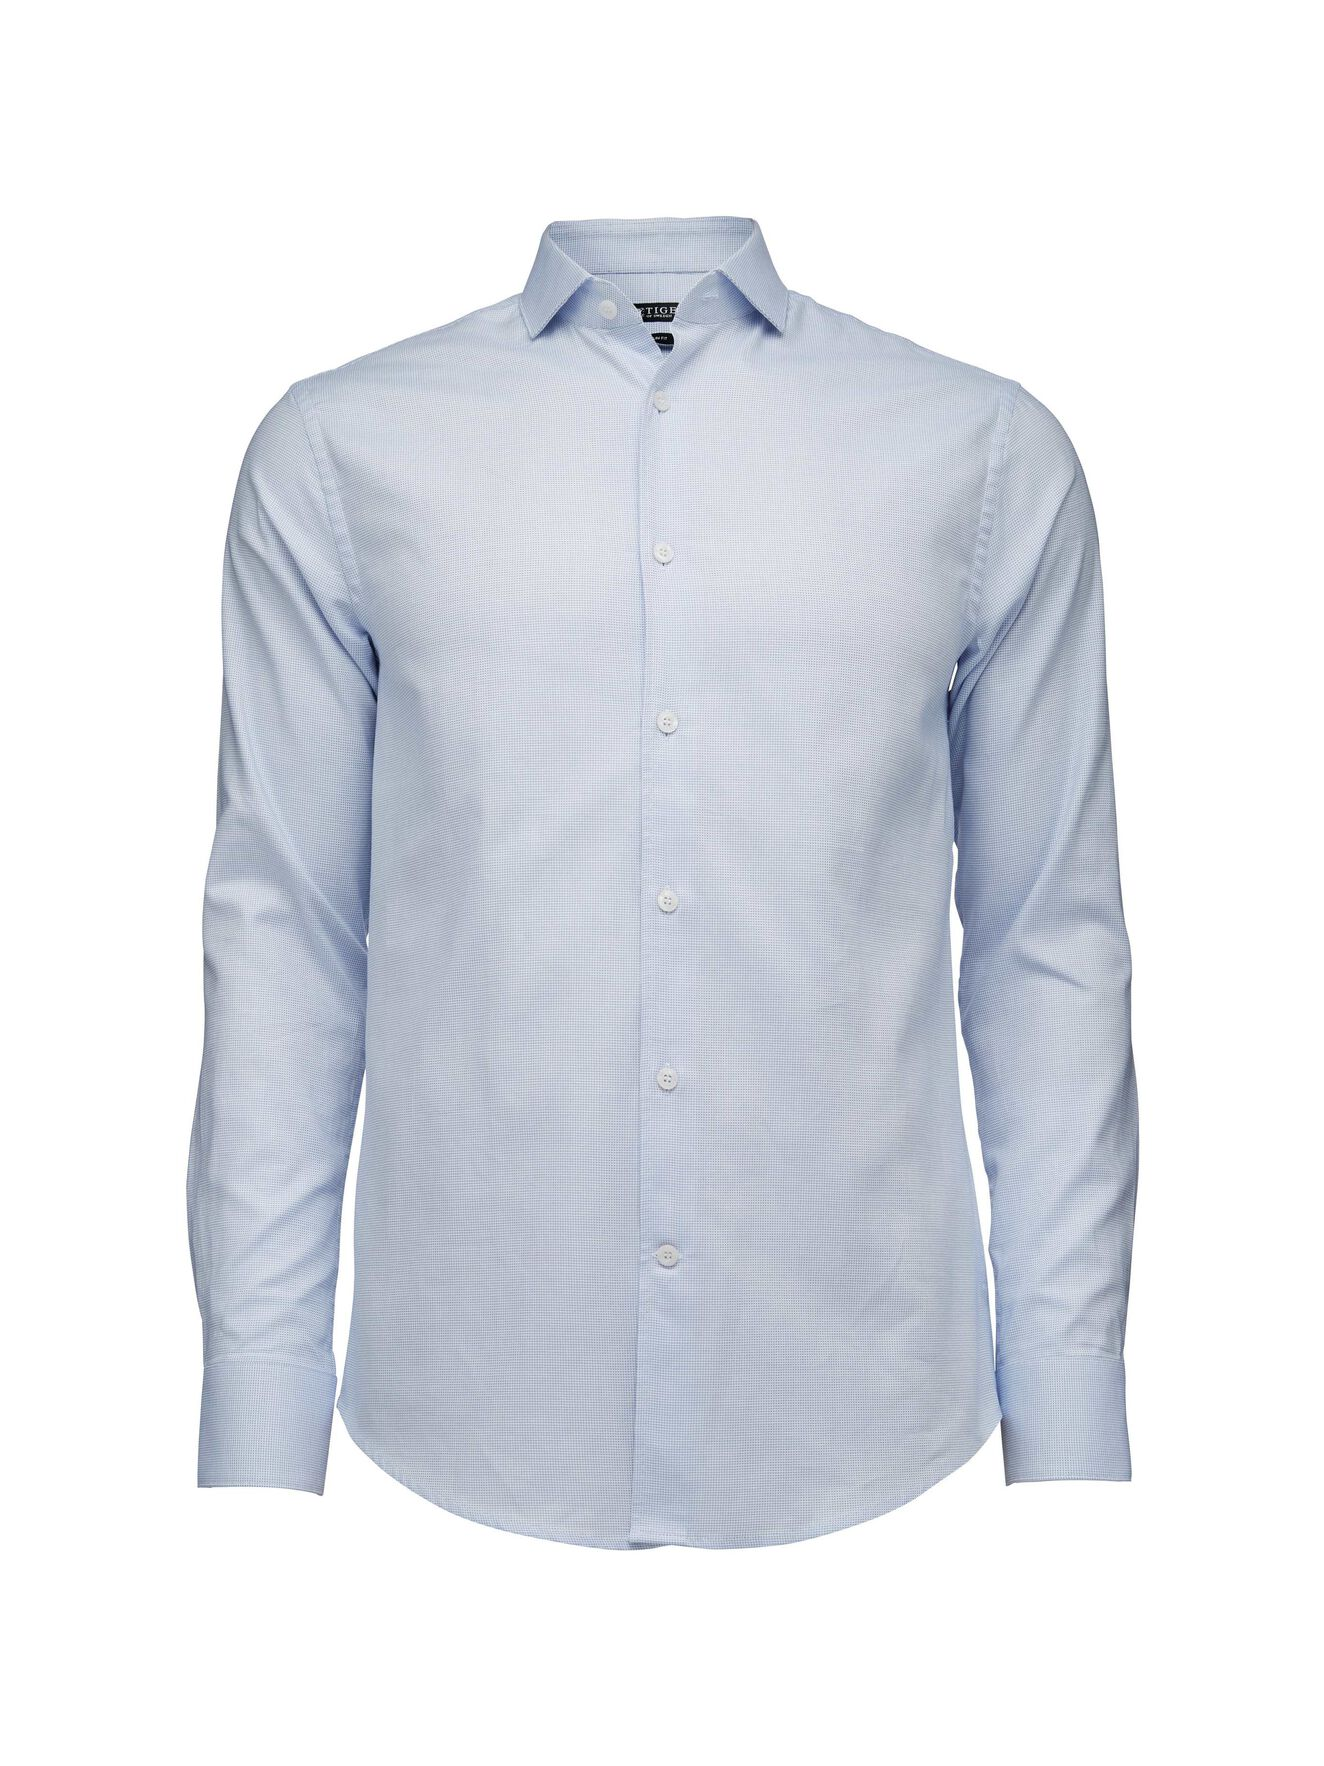 Farrell 5 shirt in Dust blue from Tiger of Sweden